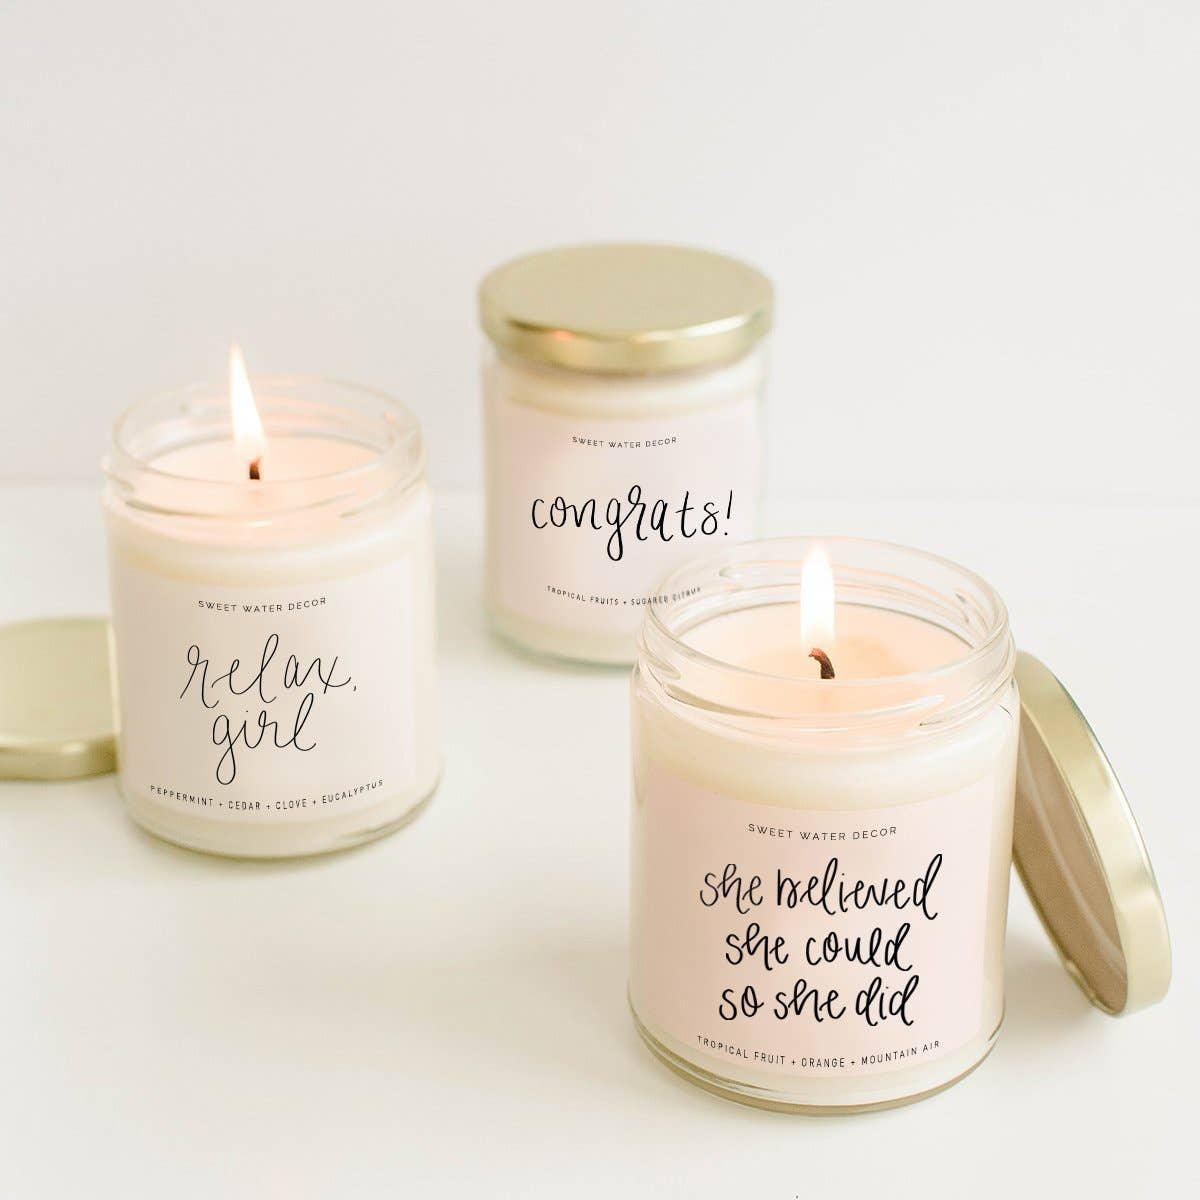 Sweet Water Decor - Let's Stay Home Soy Candle